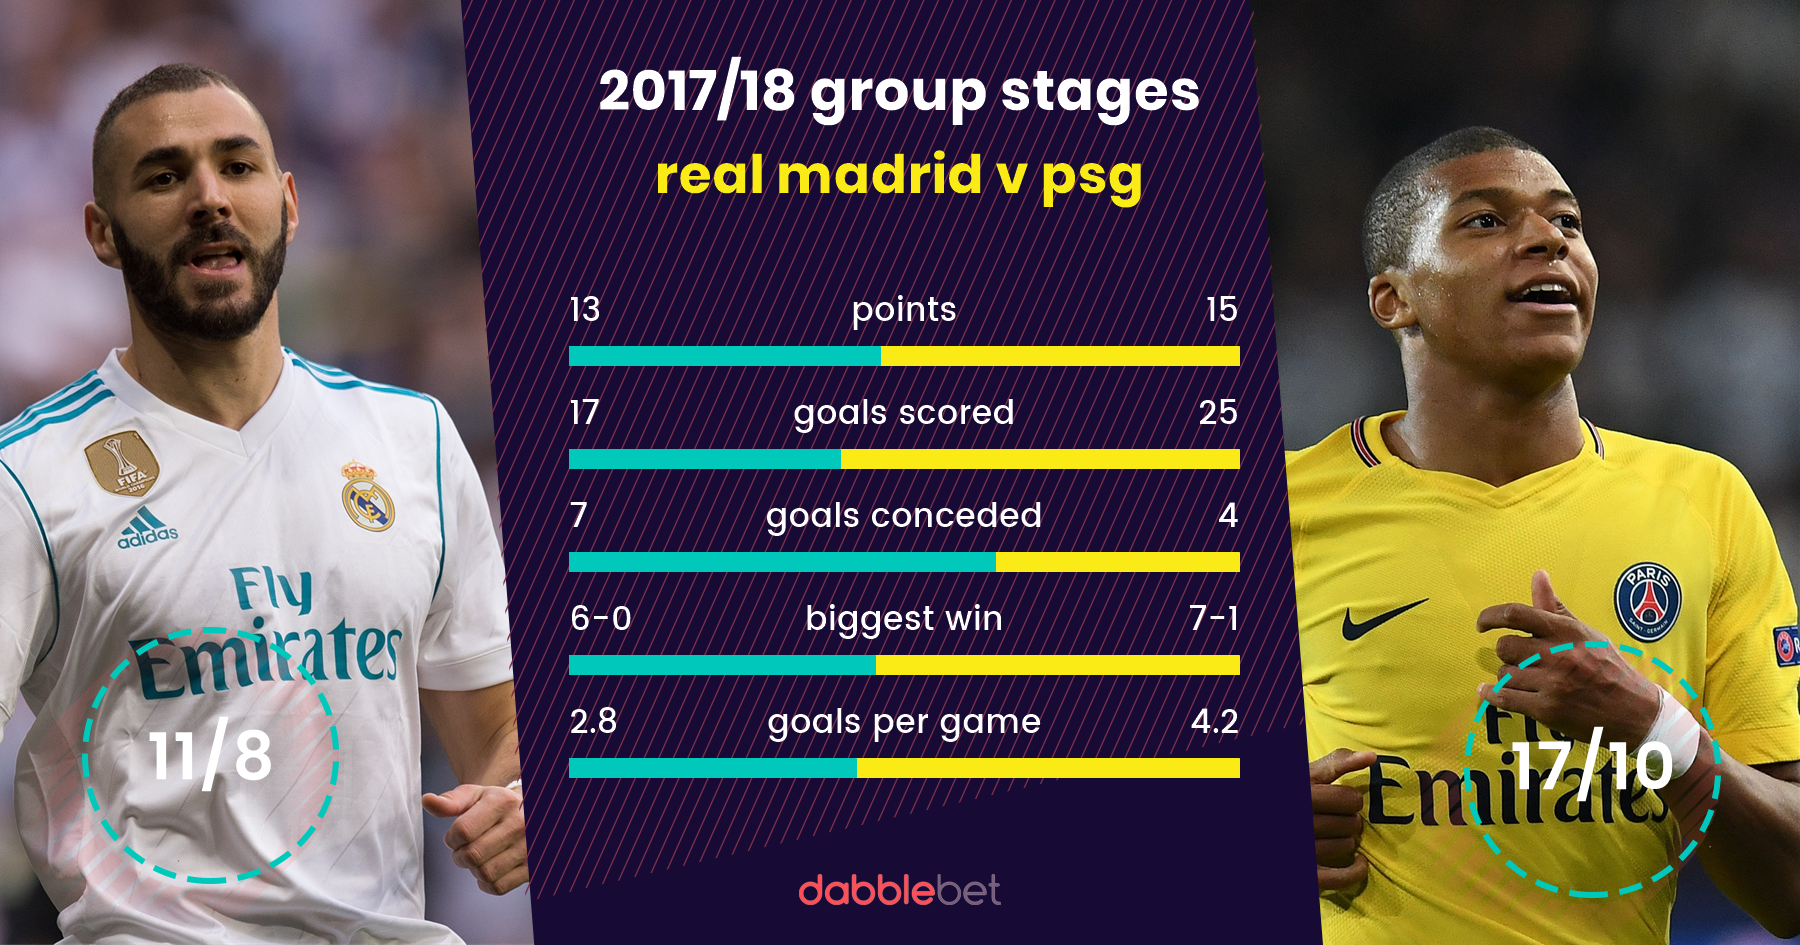 Real Madrid PSG graphic